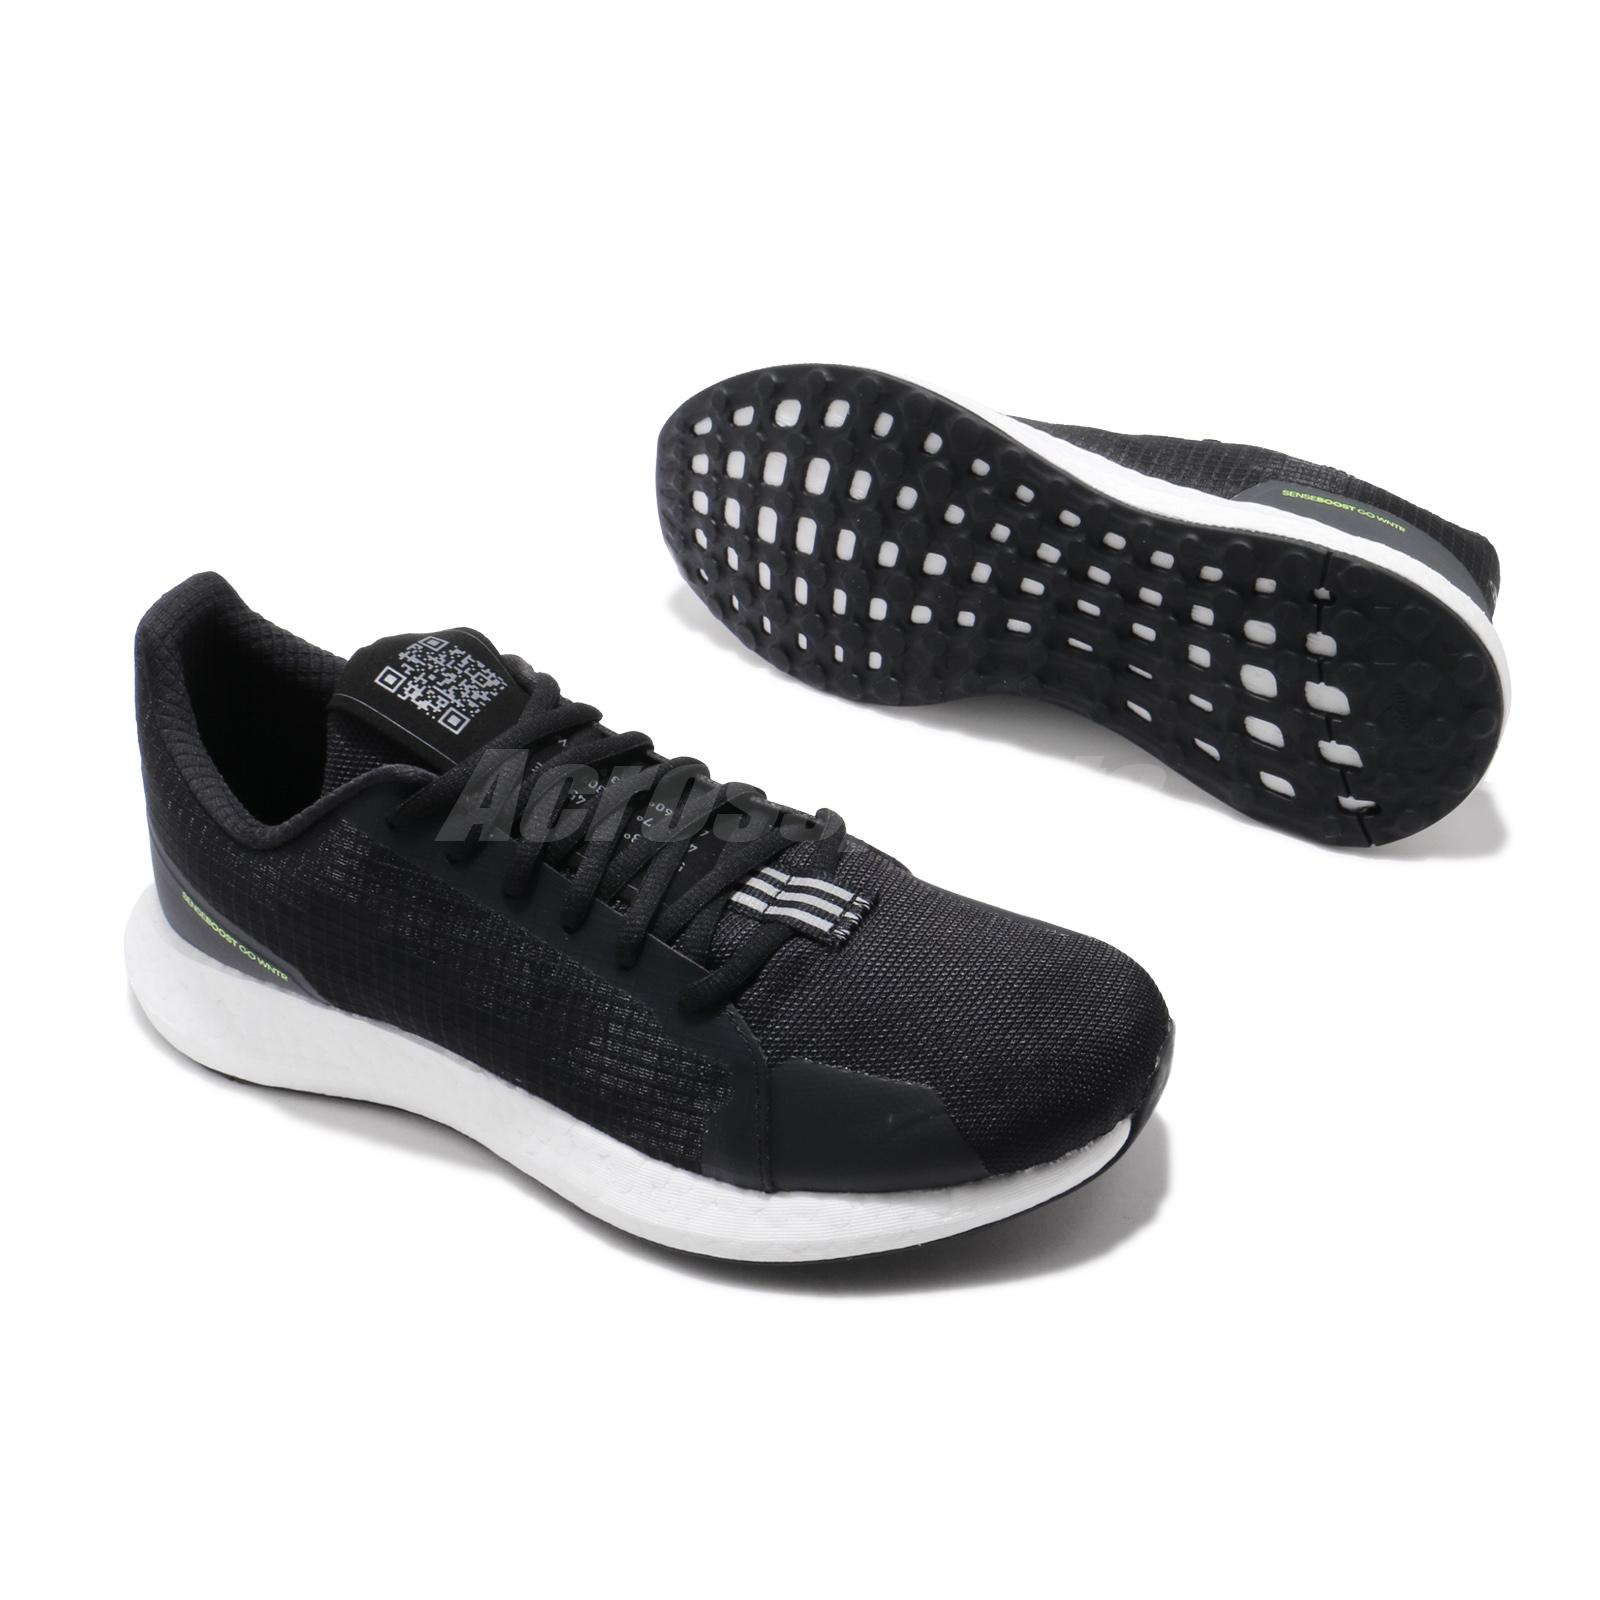 adidas SenseBOOST Go WNTR M Black Winter Mens Running Shoes Lifestyle EH1026